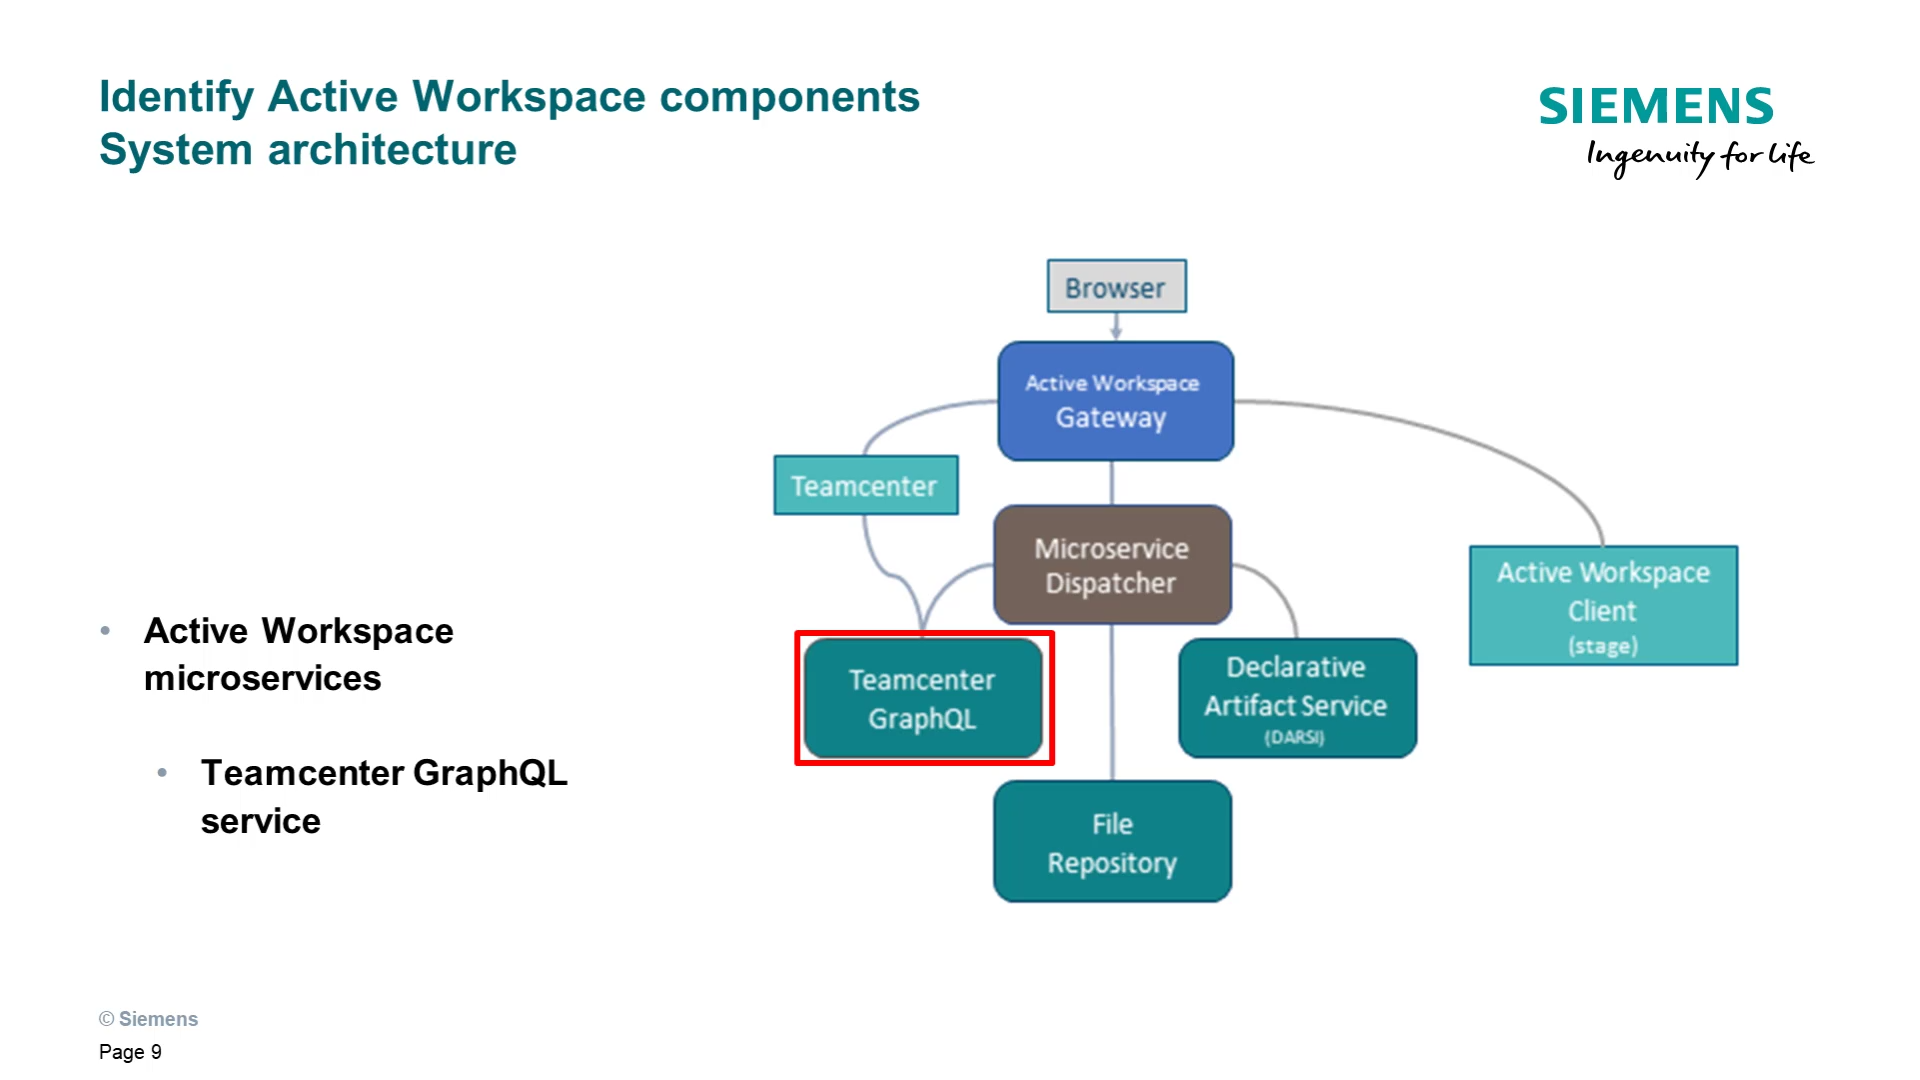 Identify the Active Workspace architecture and components cover image